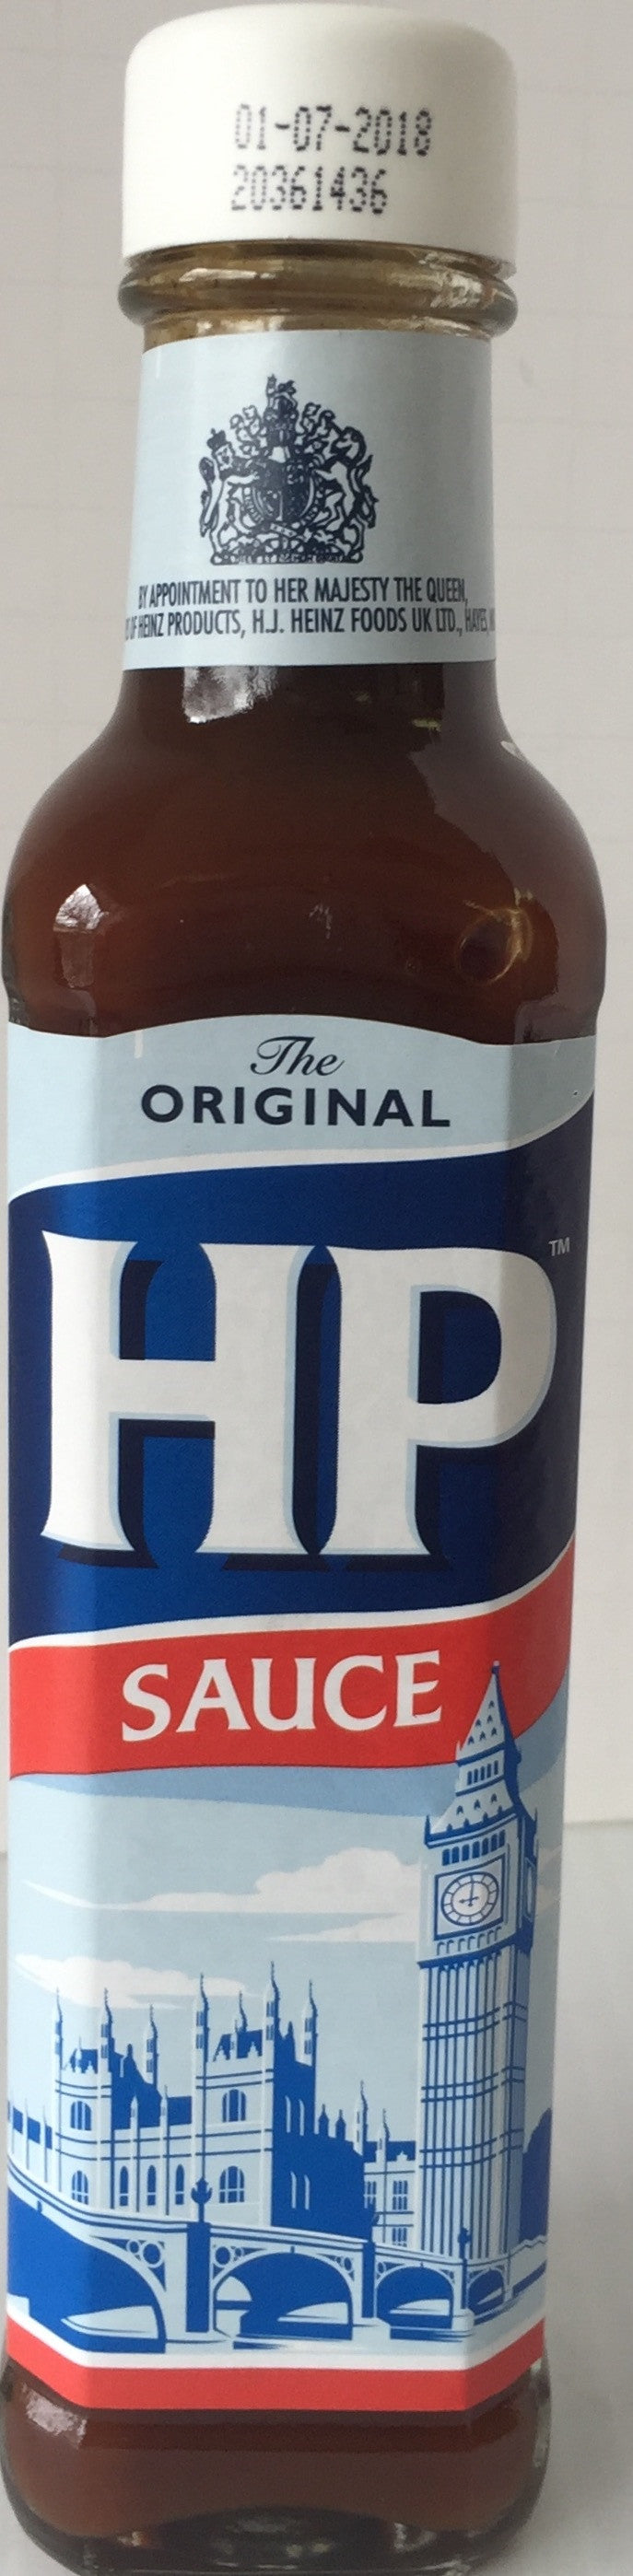 HP Sauce 255g bottle